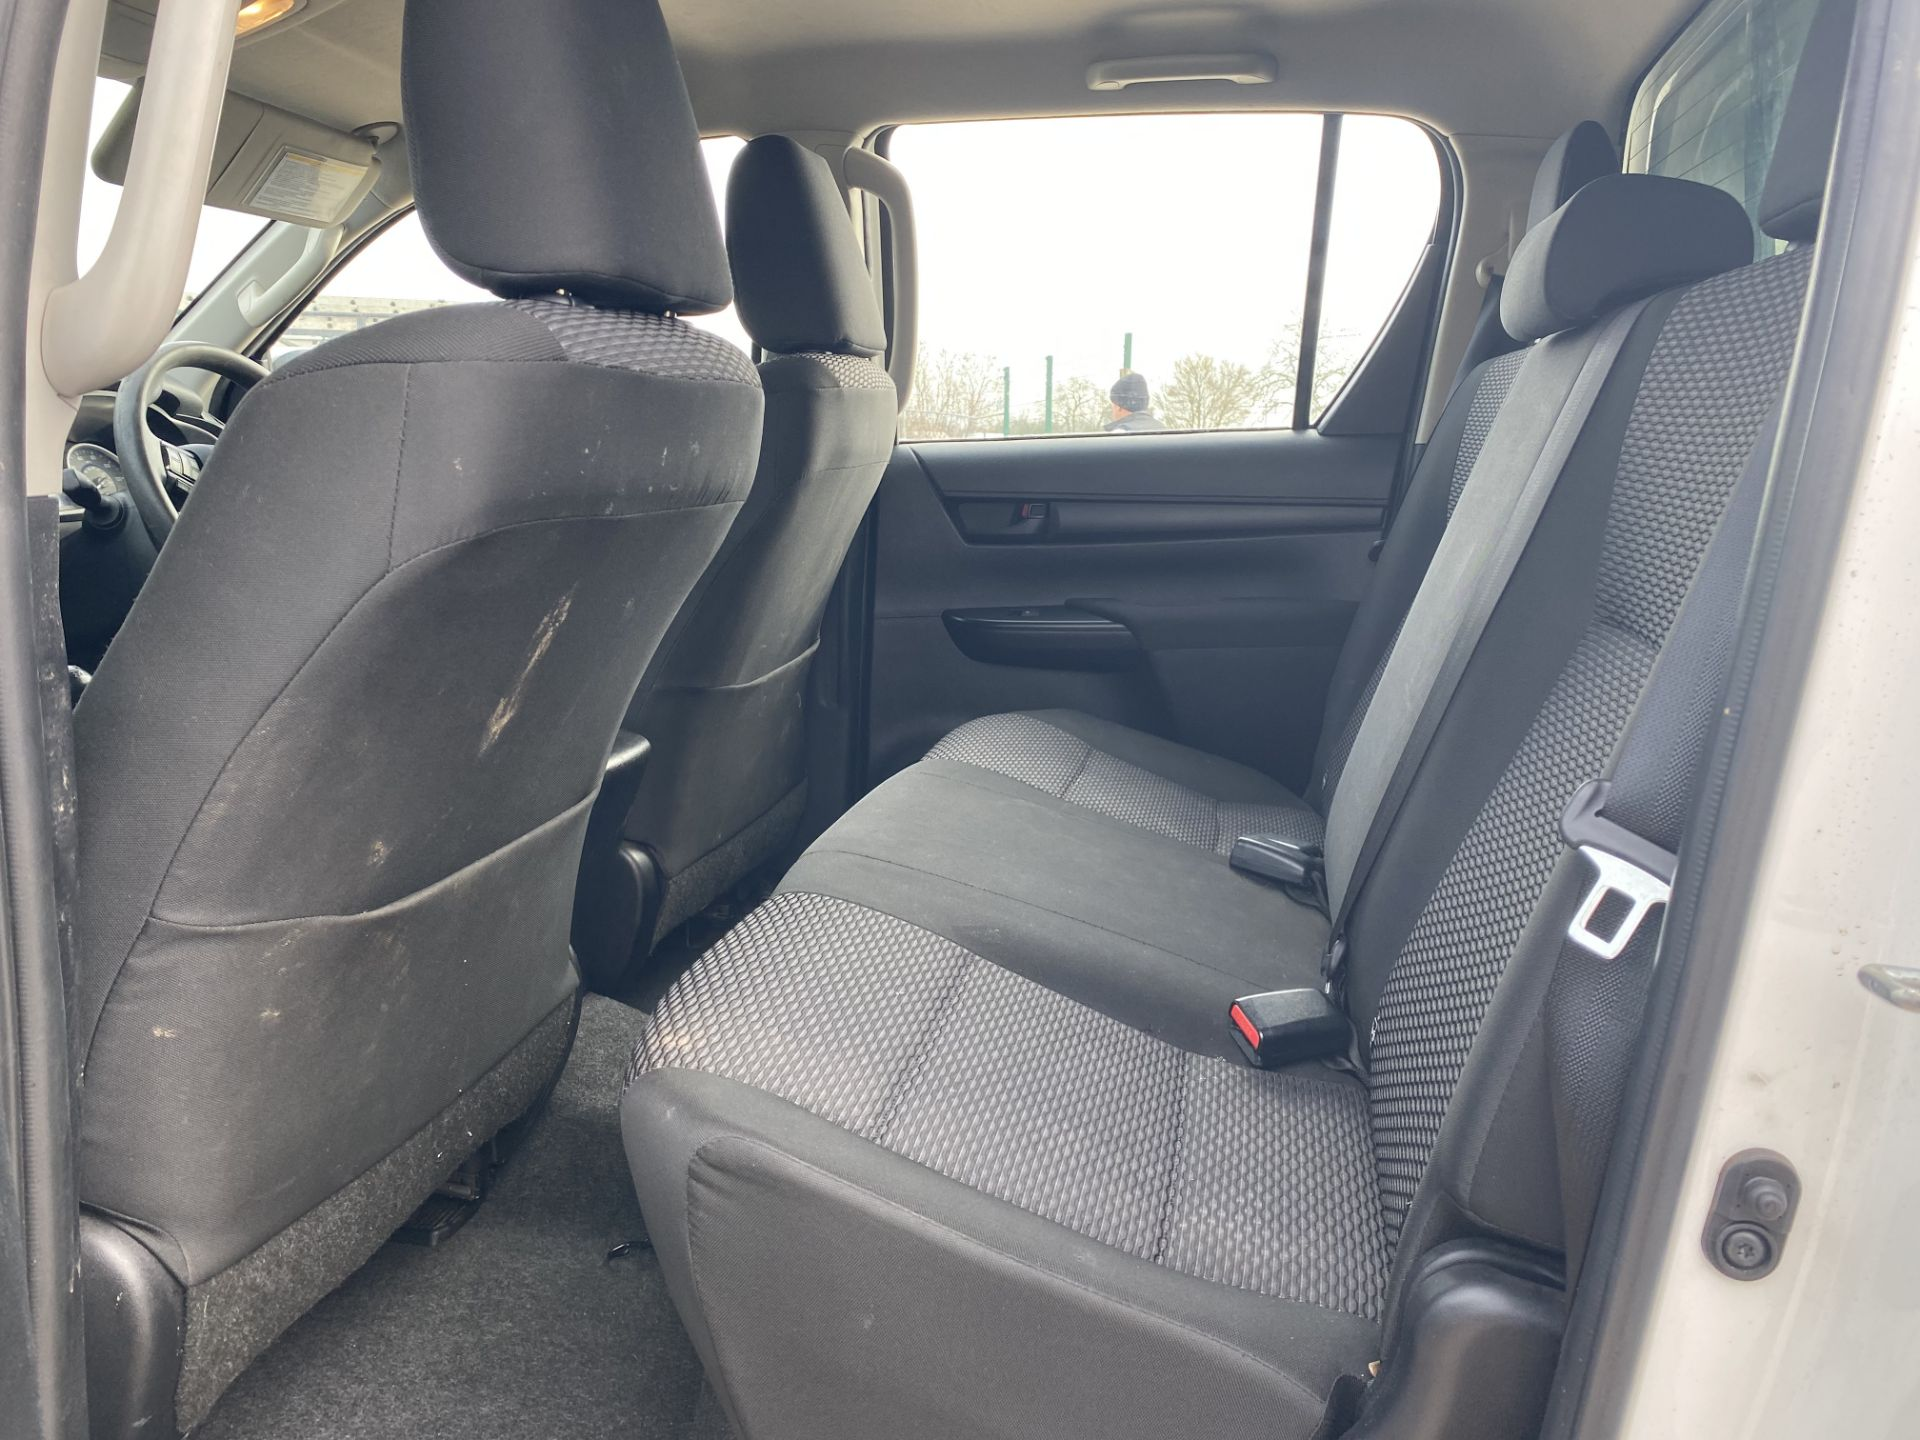 """TOYOTA HILUX """"ACTIVE"""" DOUBLE CAB PICK-UP (2016 - NEW MODEL) 1 OWNER - AIR CON - REAR CANOPY- LOOK - Image 17 of 19"""